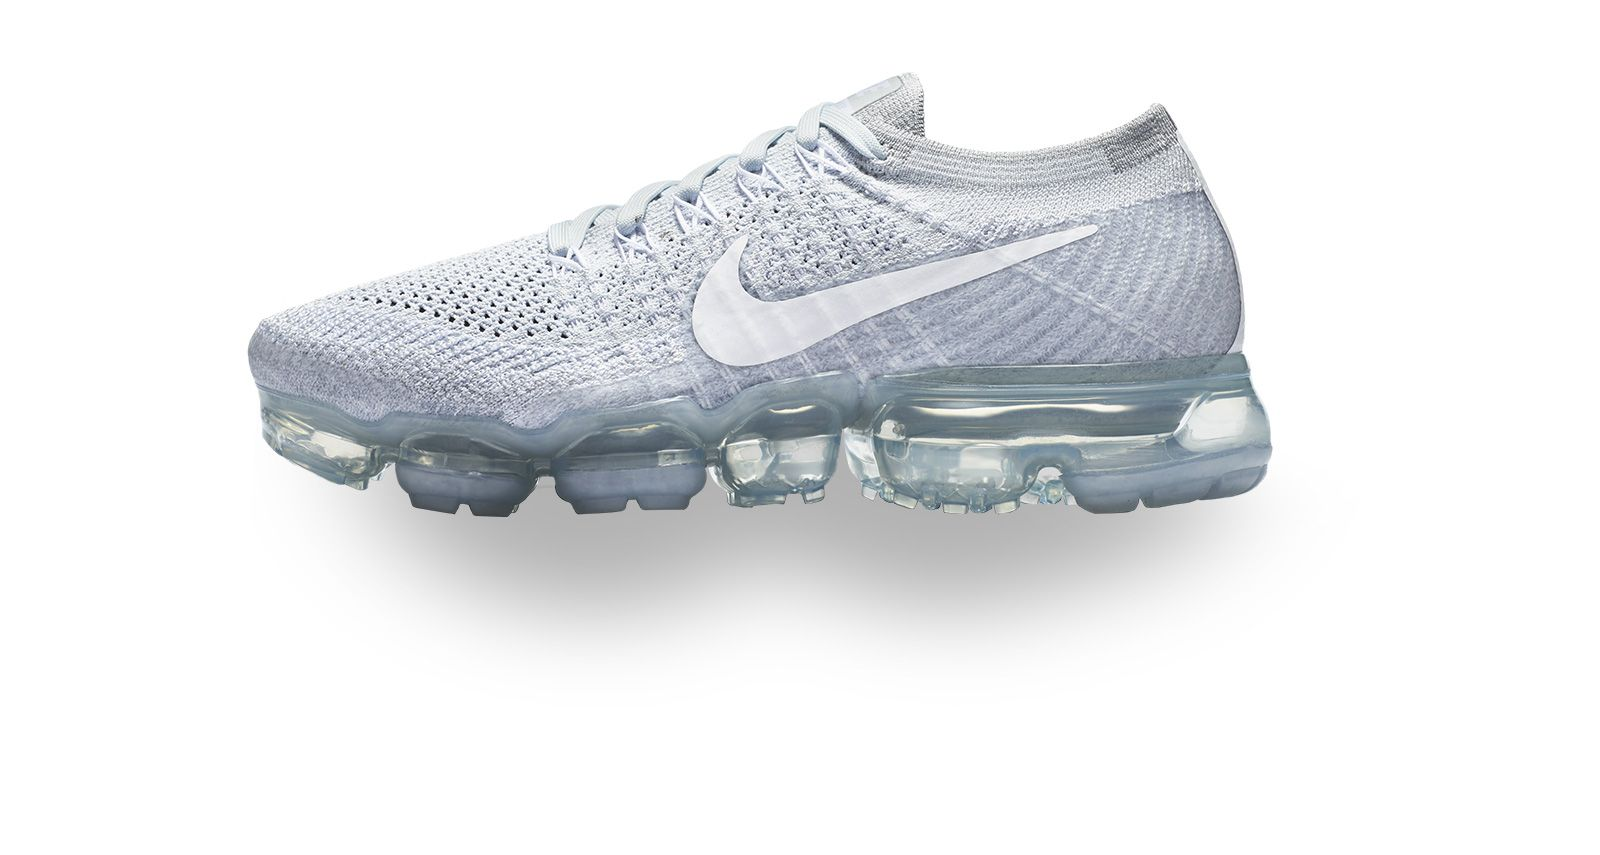 60% OFF,nike i silver,